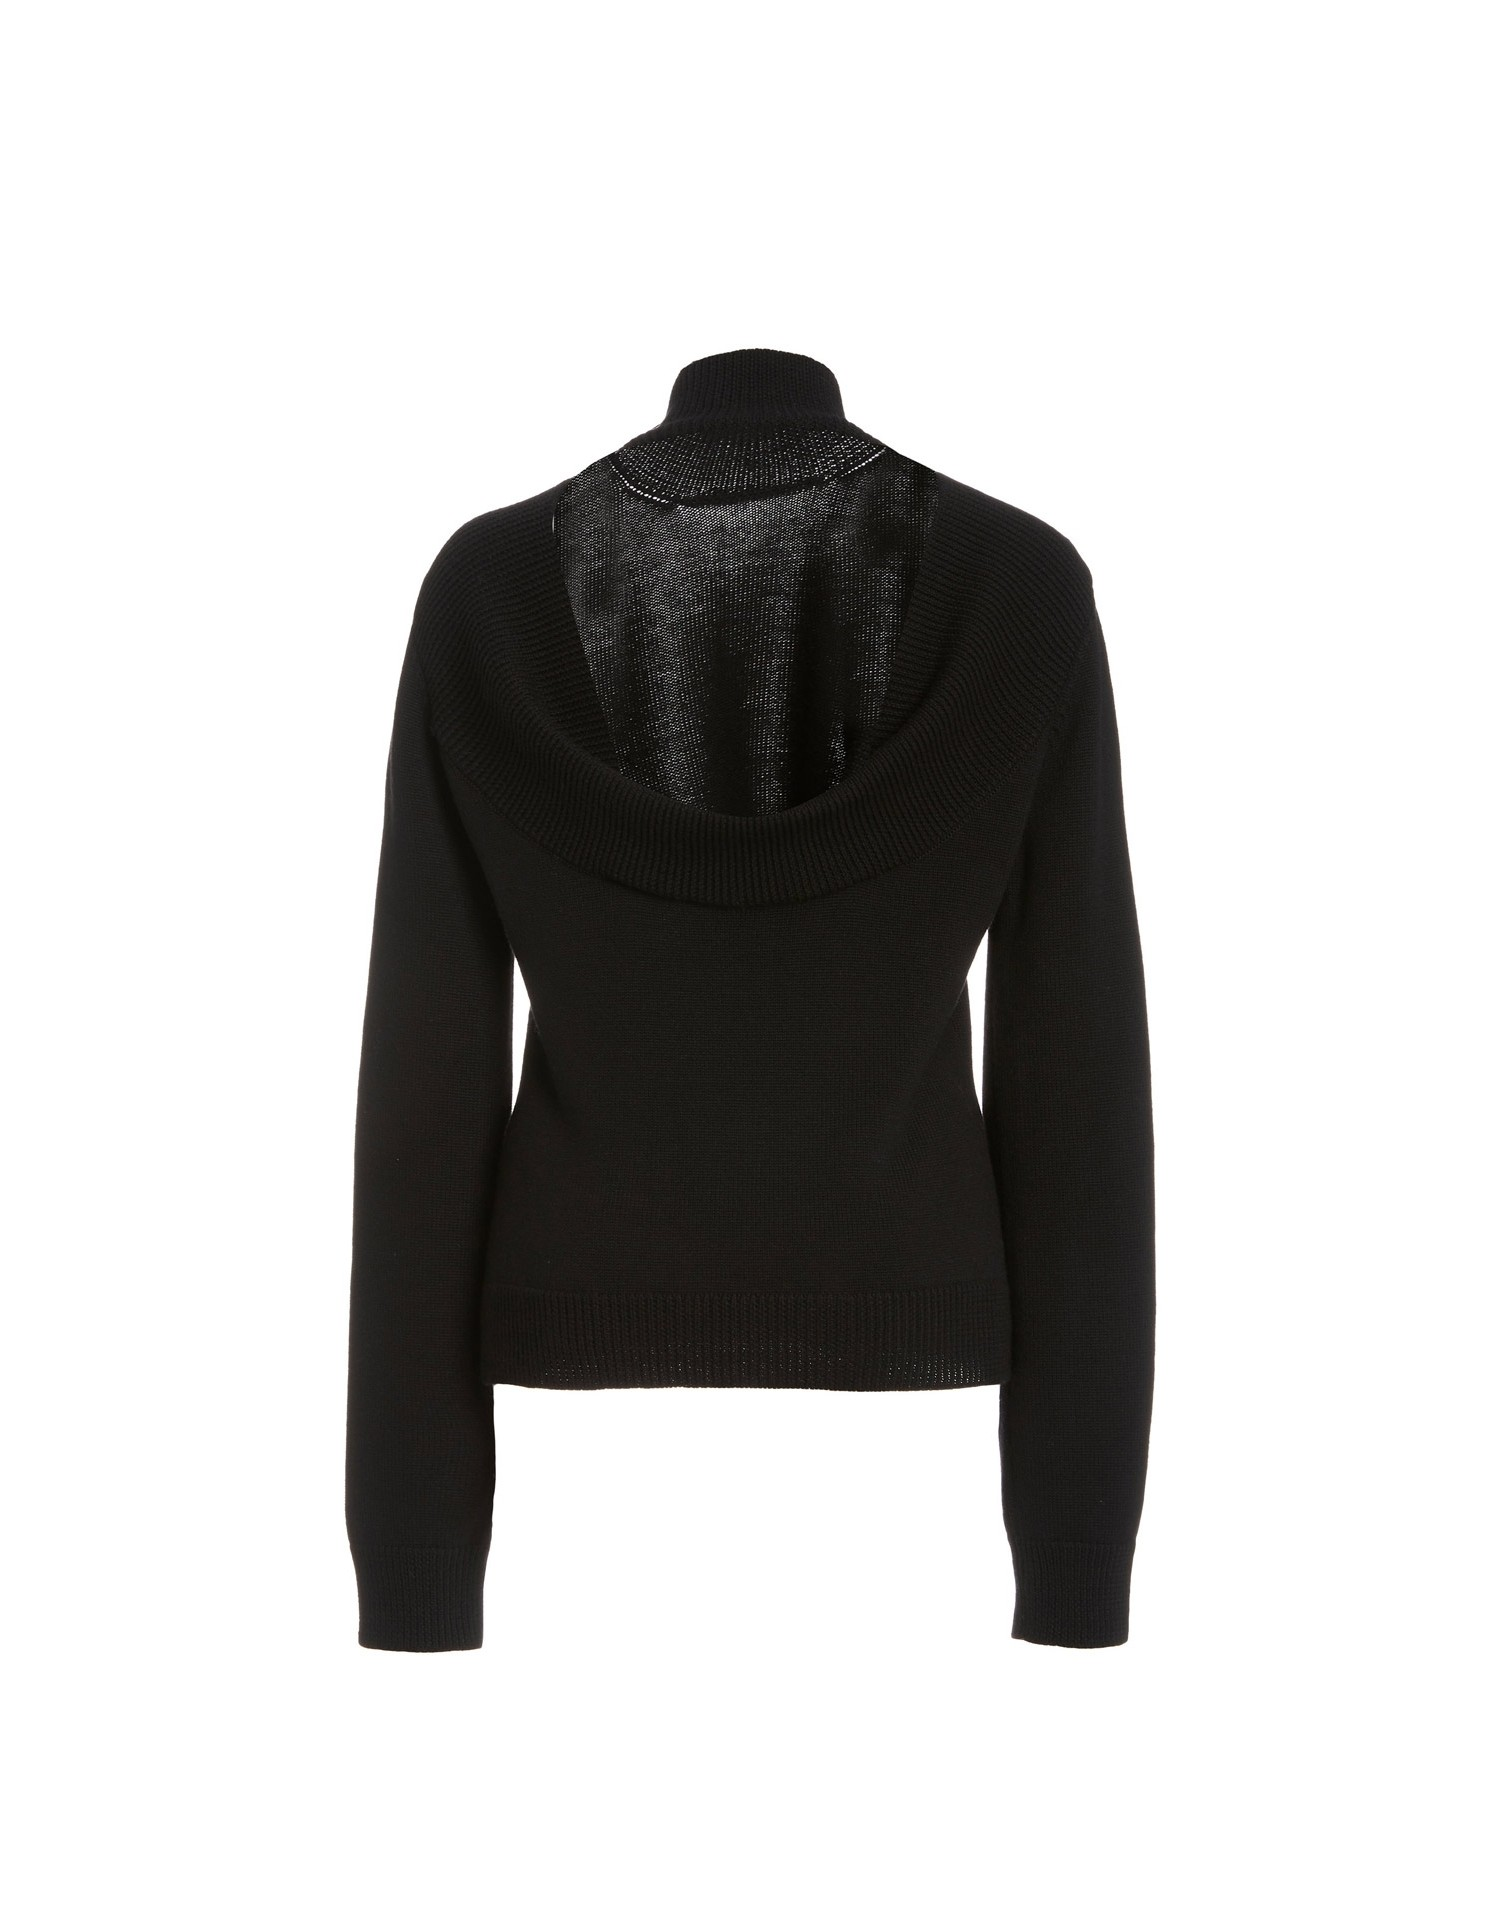 MONSE Ribbed Cowl Back Knit Sweater in Black Flat Back View